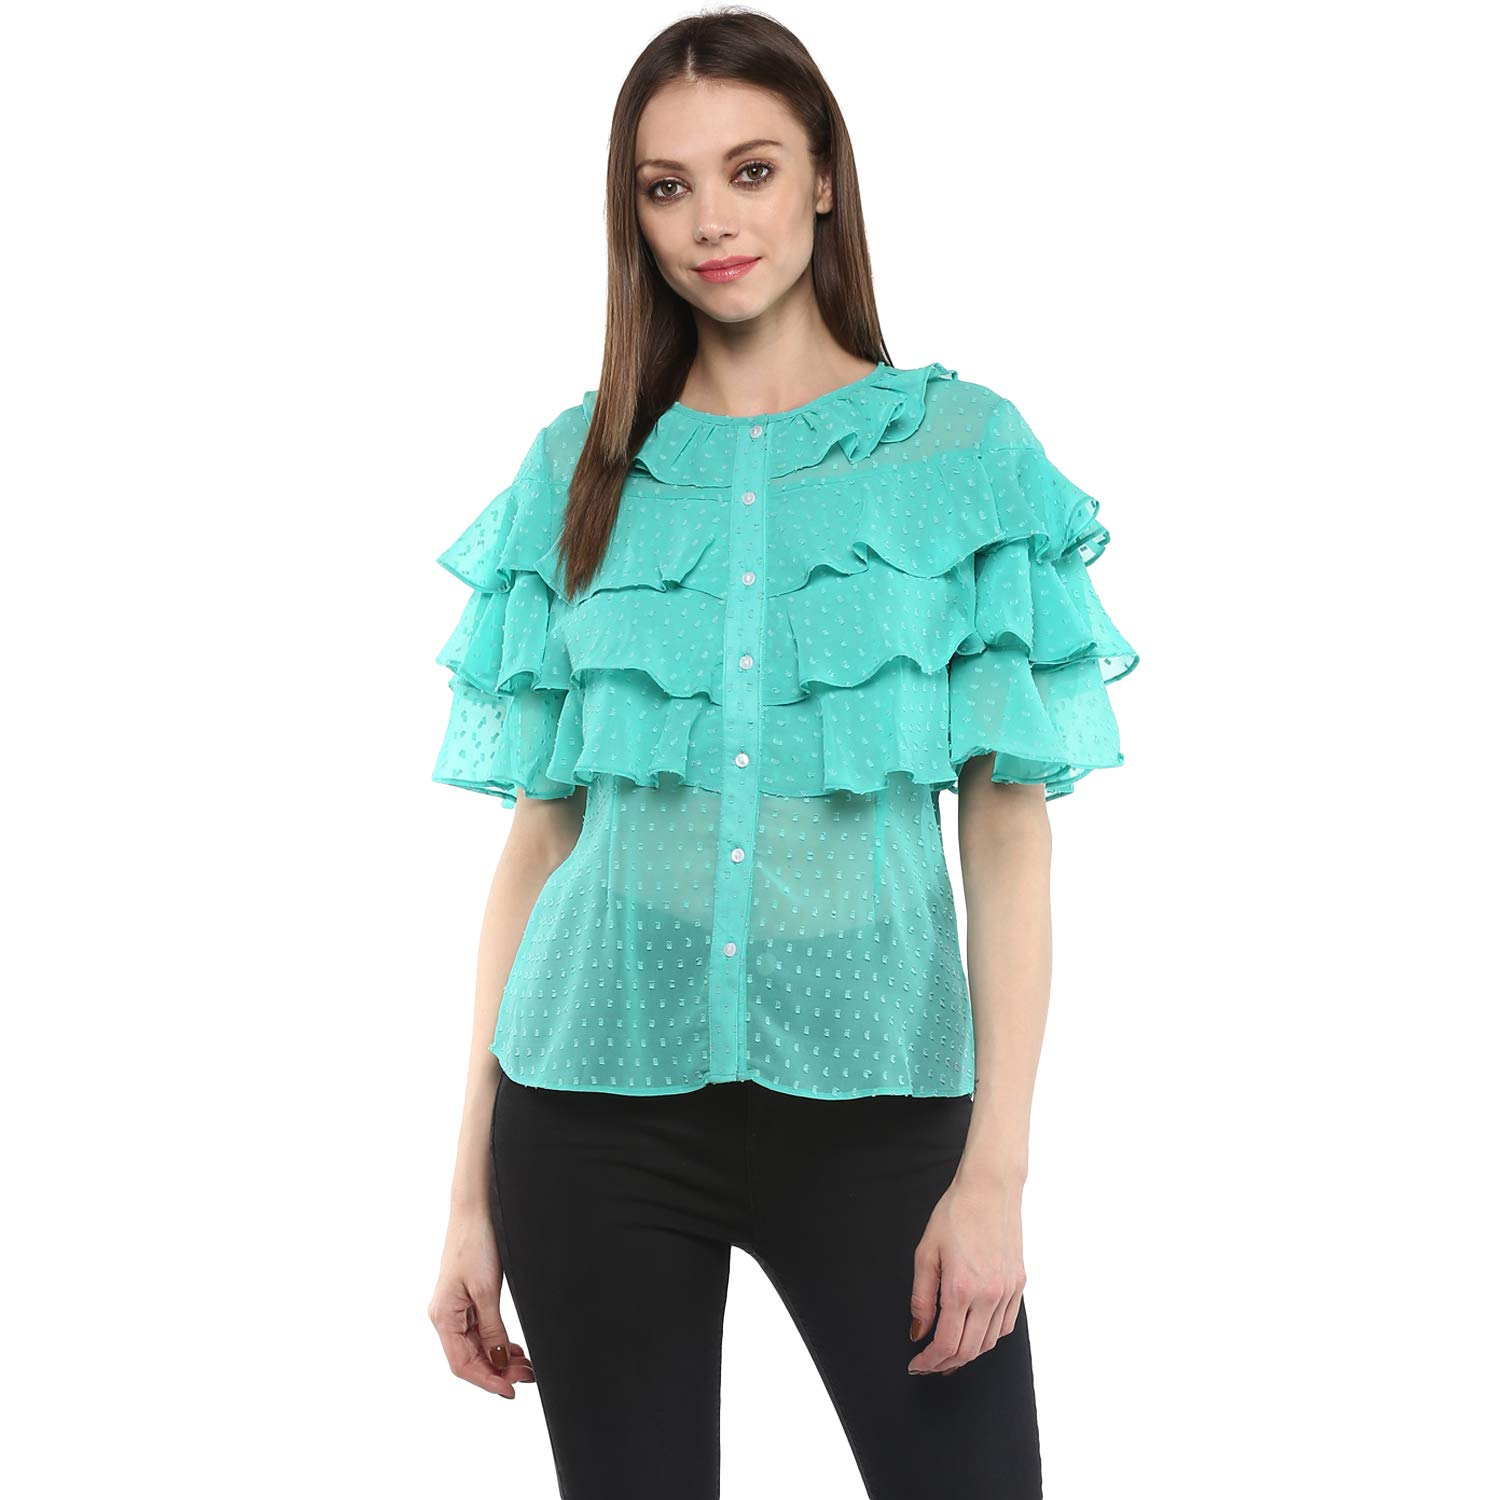 92d5ededb NUN Polyester Swiss Dot Printed Shirt Top with Layered Sleeves Design for  Women: Amazon.in: Clothing & Accessories